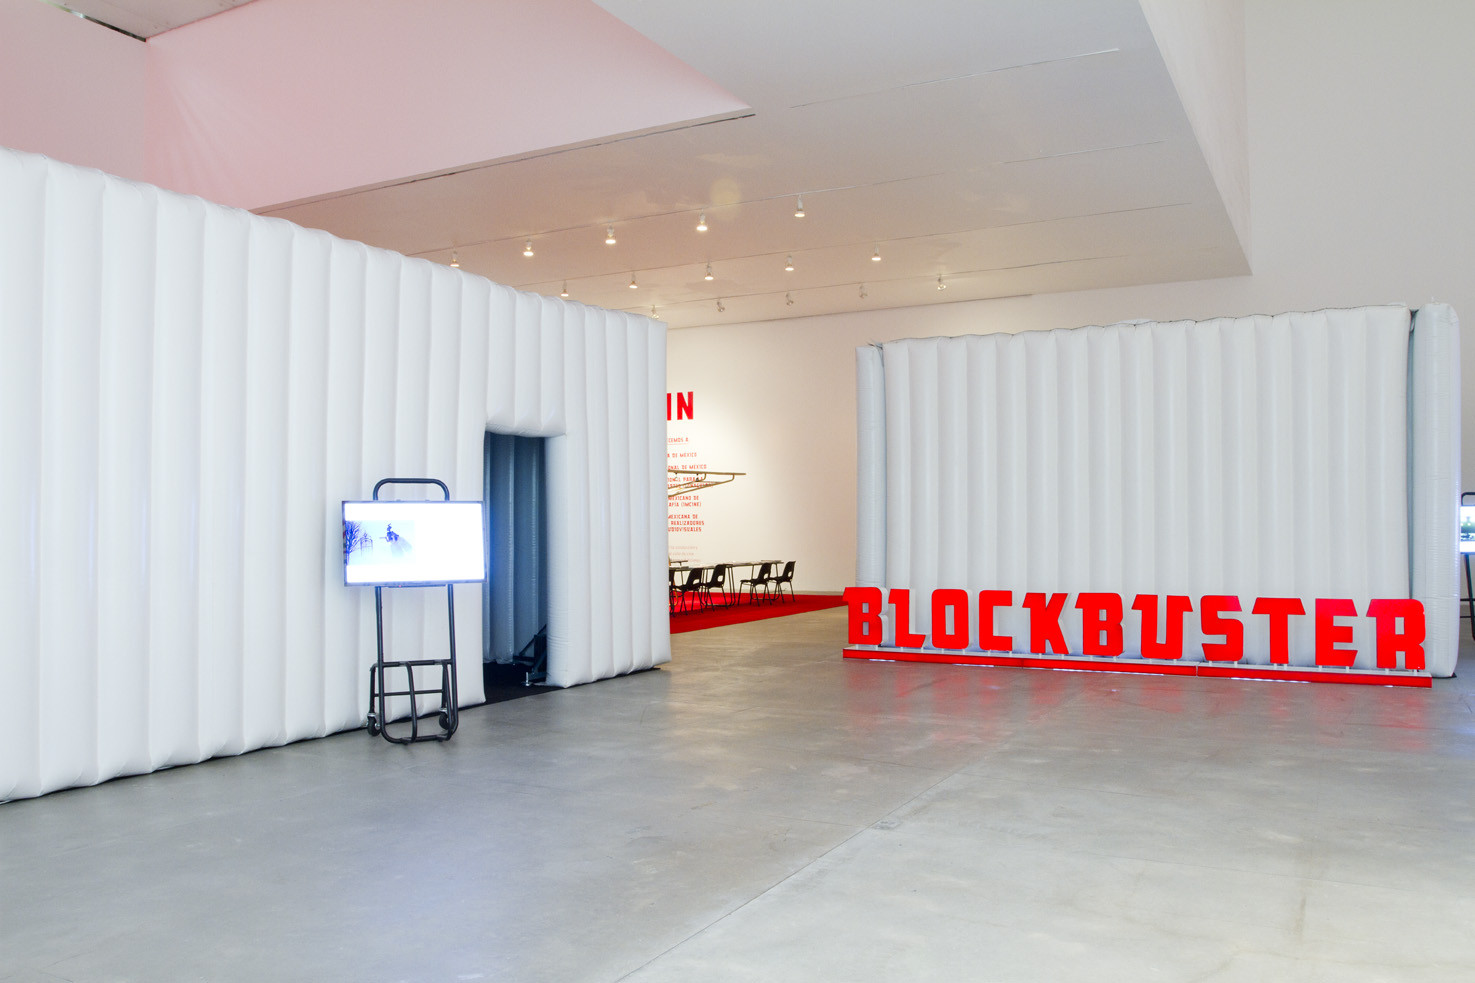 Blockbuster: Cine itinerante para exhibiciones / Work!, © Victor Deschamps